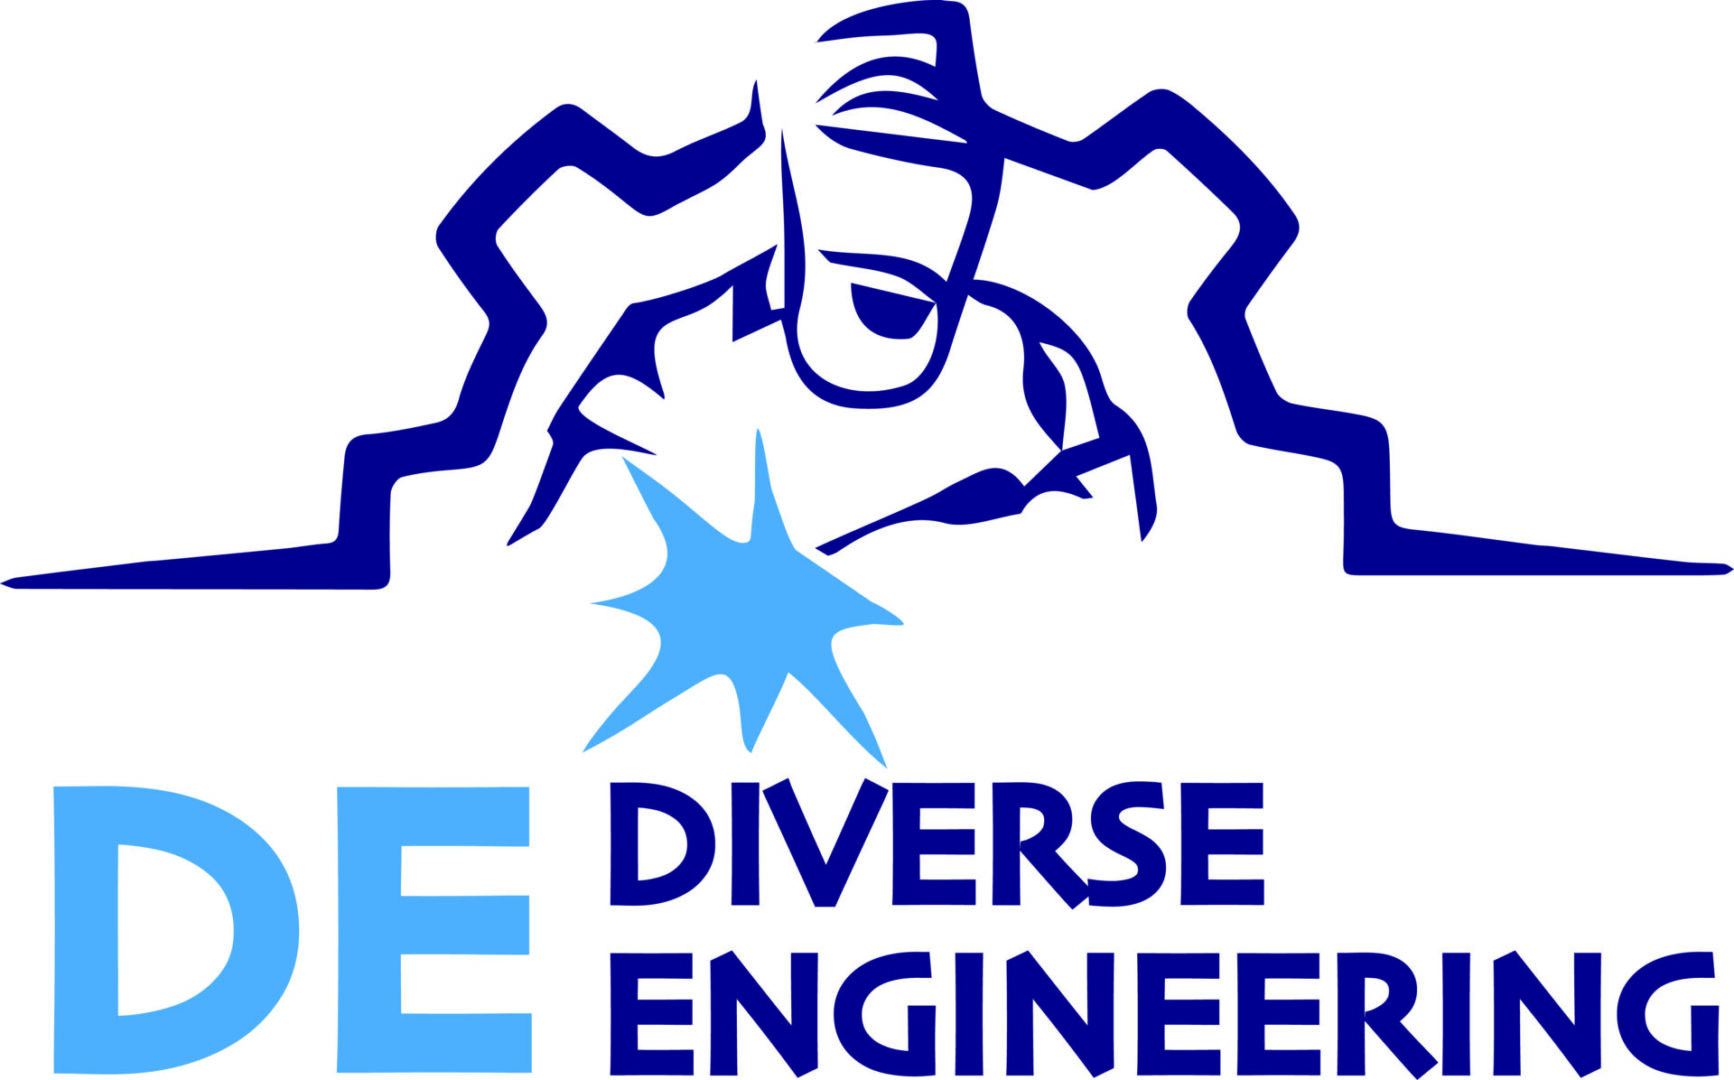 Diverse Engineering logo-colour (7764f047-60a4-4a11-b8e1-7cff5079b5fb)